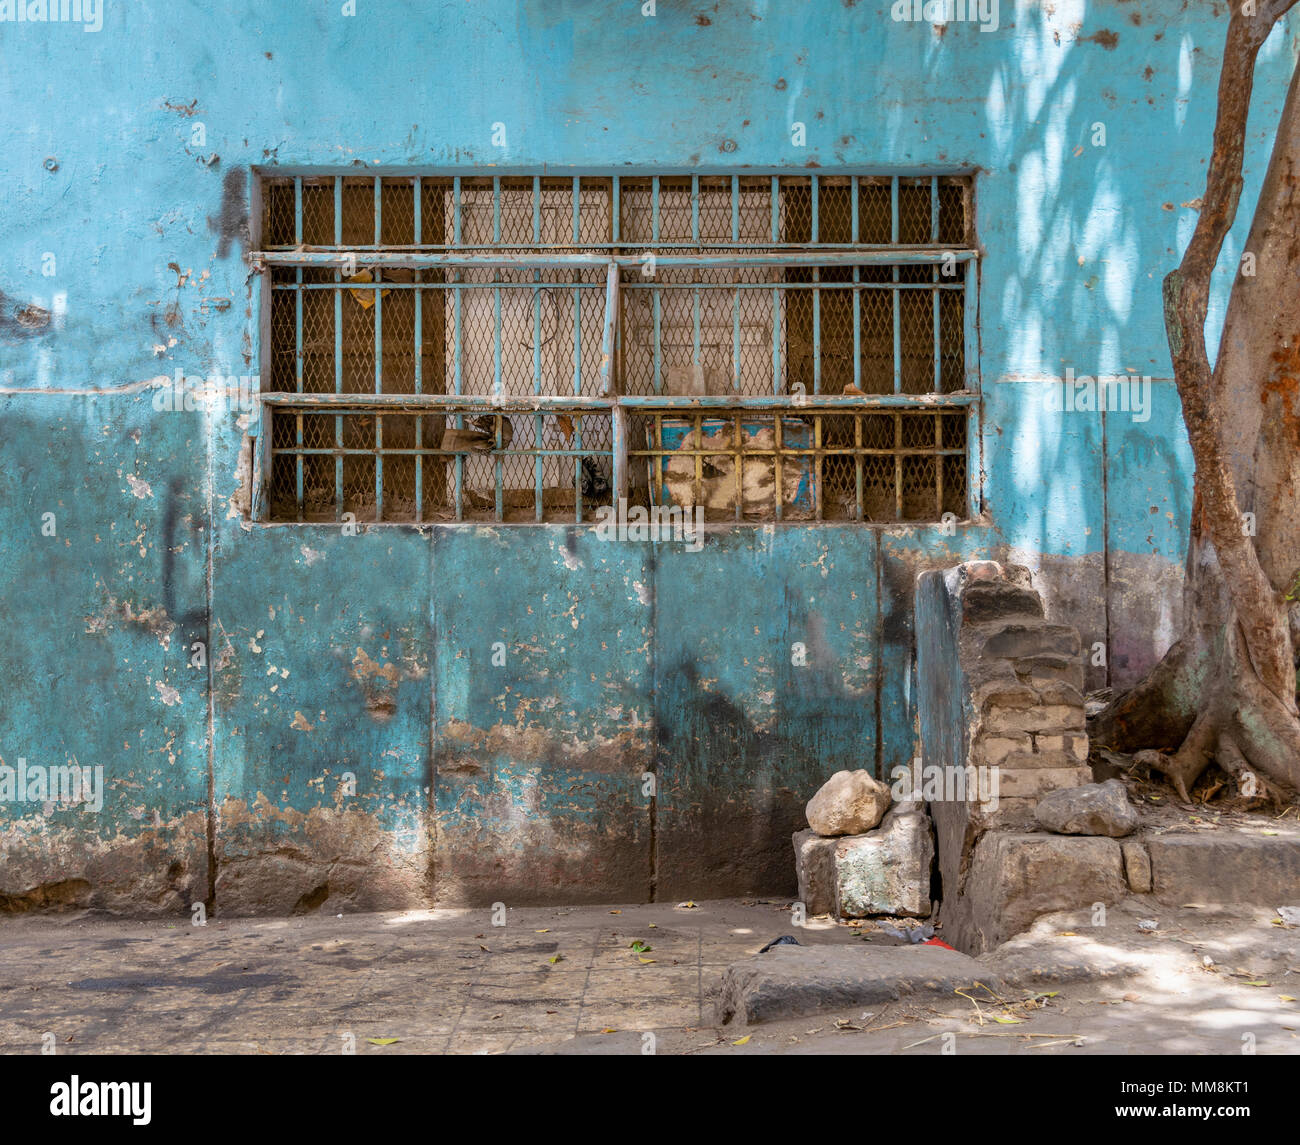 Abandoned grunge turquoise painted wall with closed window covered with rusty protective iron bars and tree trunk - Stock Image